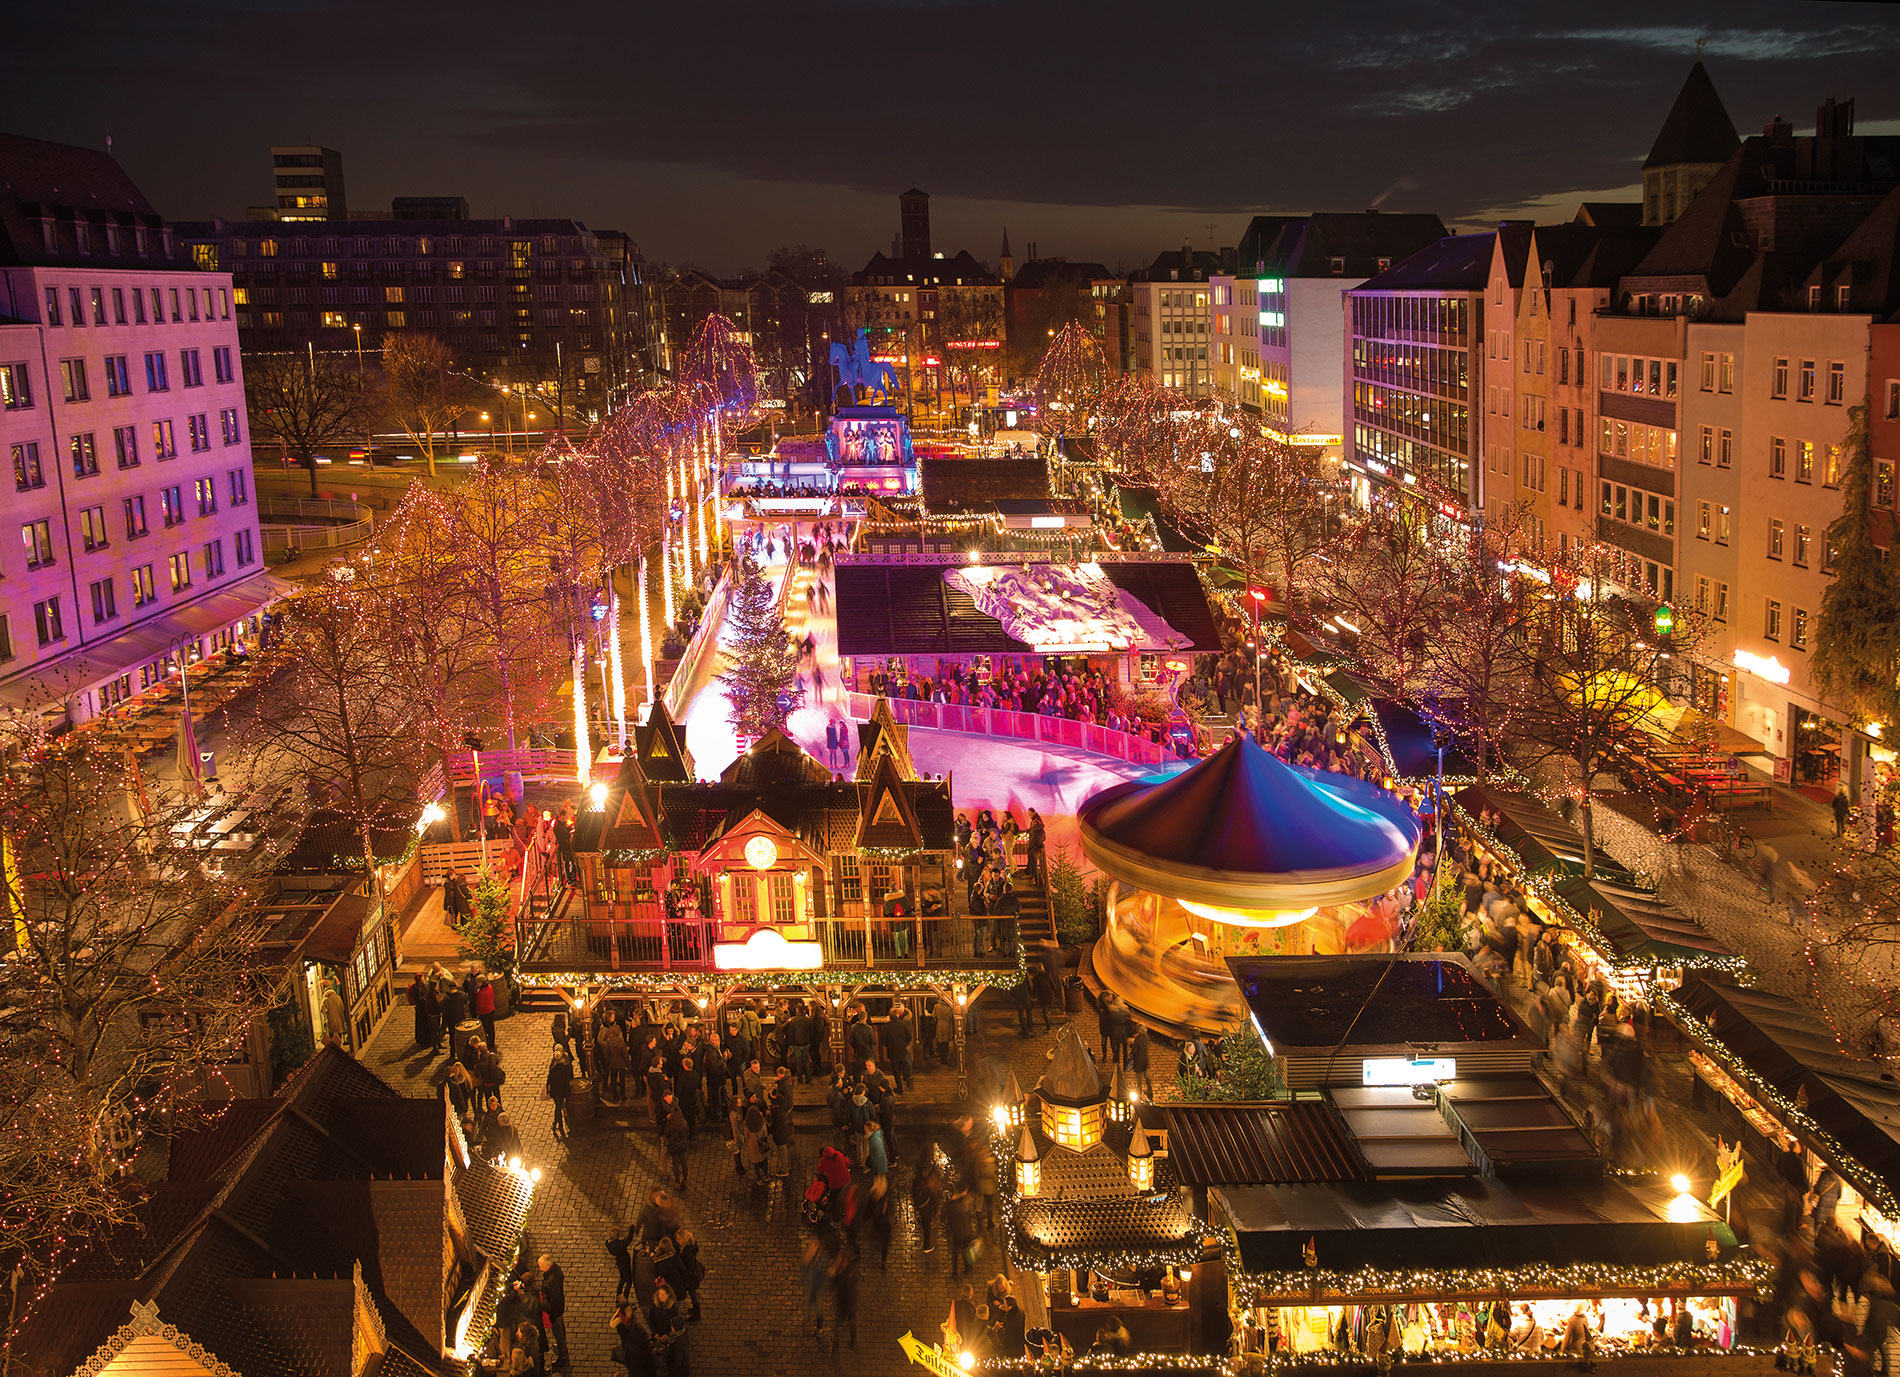 An aerial view of Cologne Christmas Market